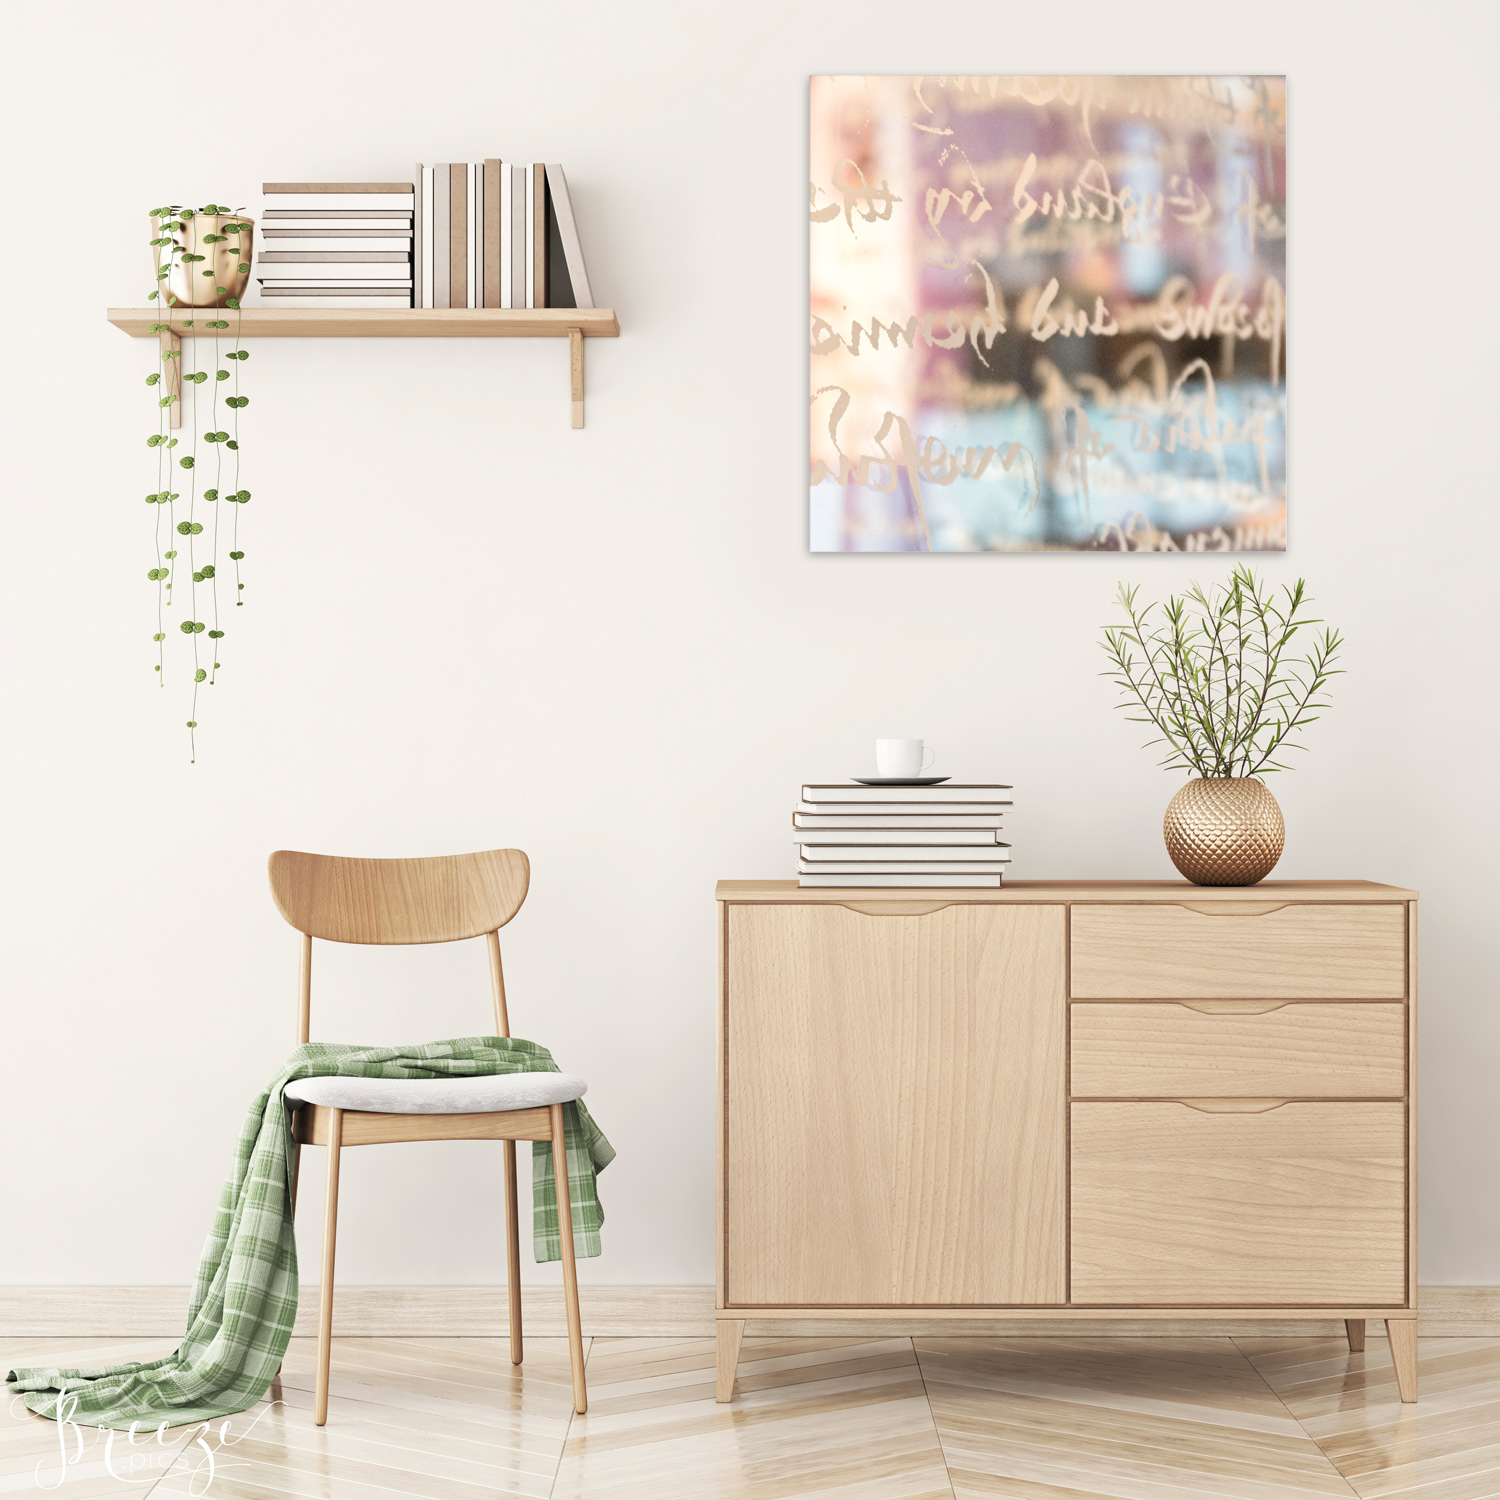 A guide to art and photography for the art studio and craft room